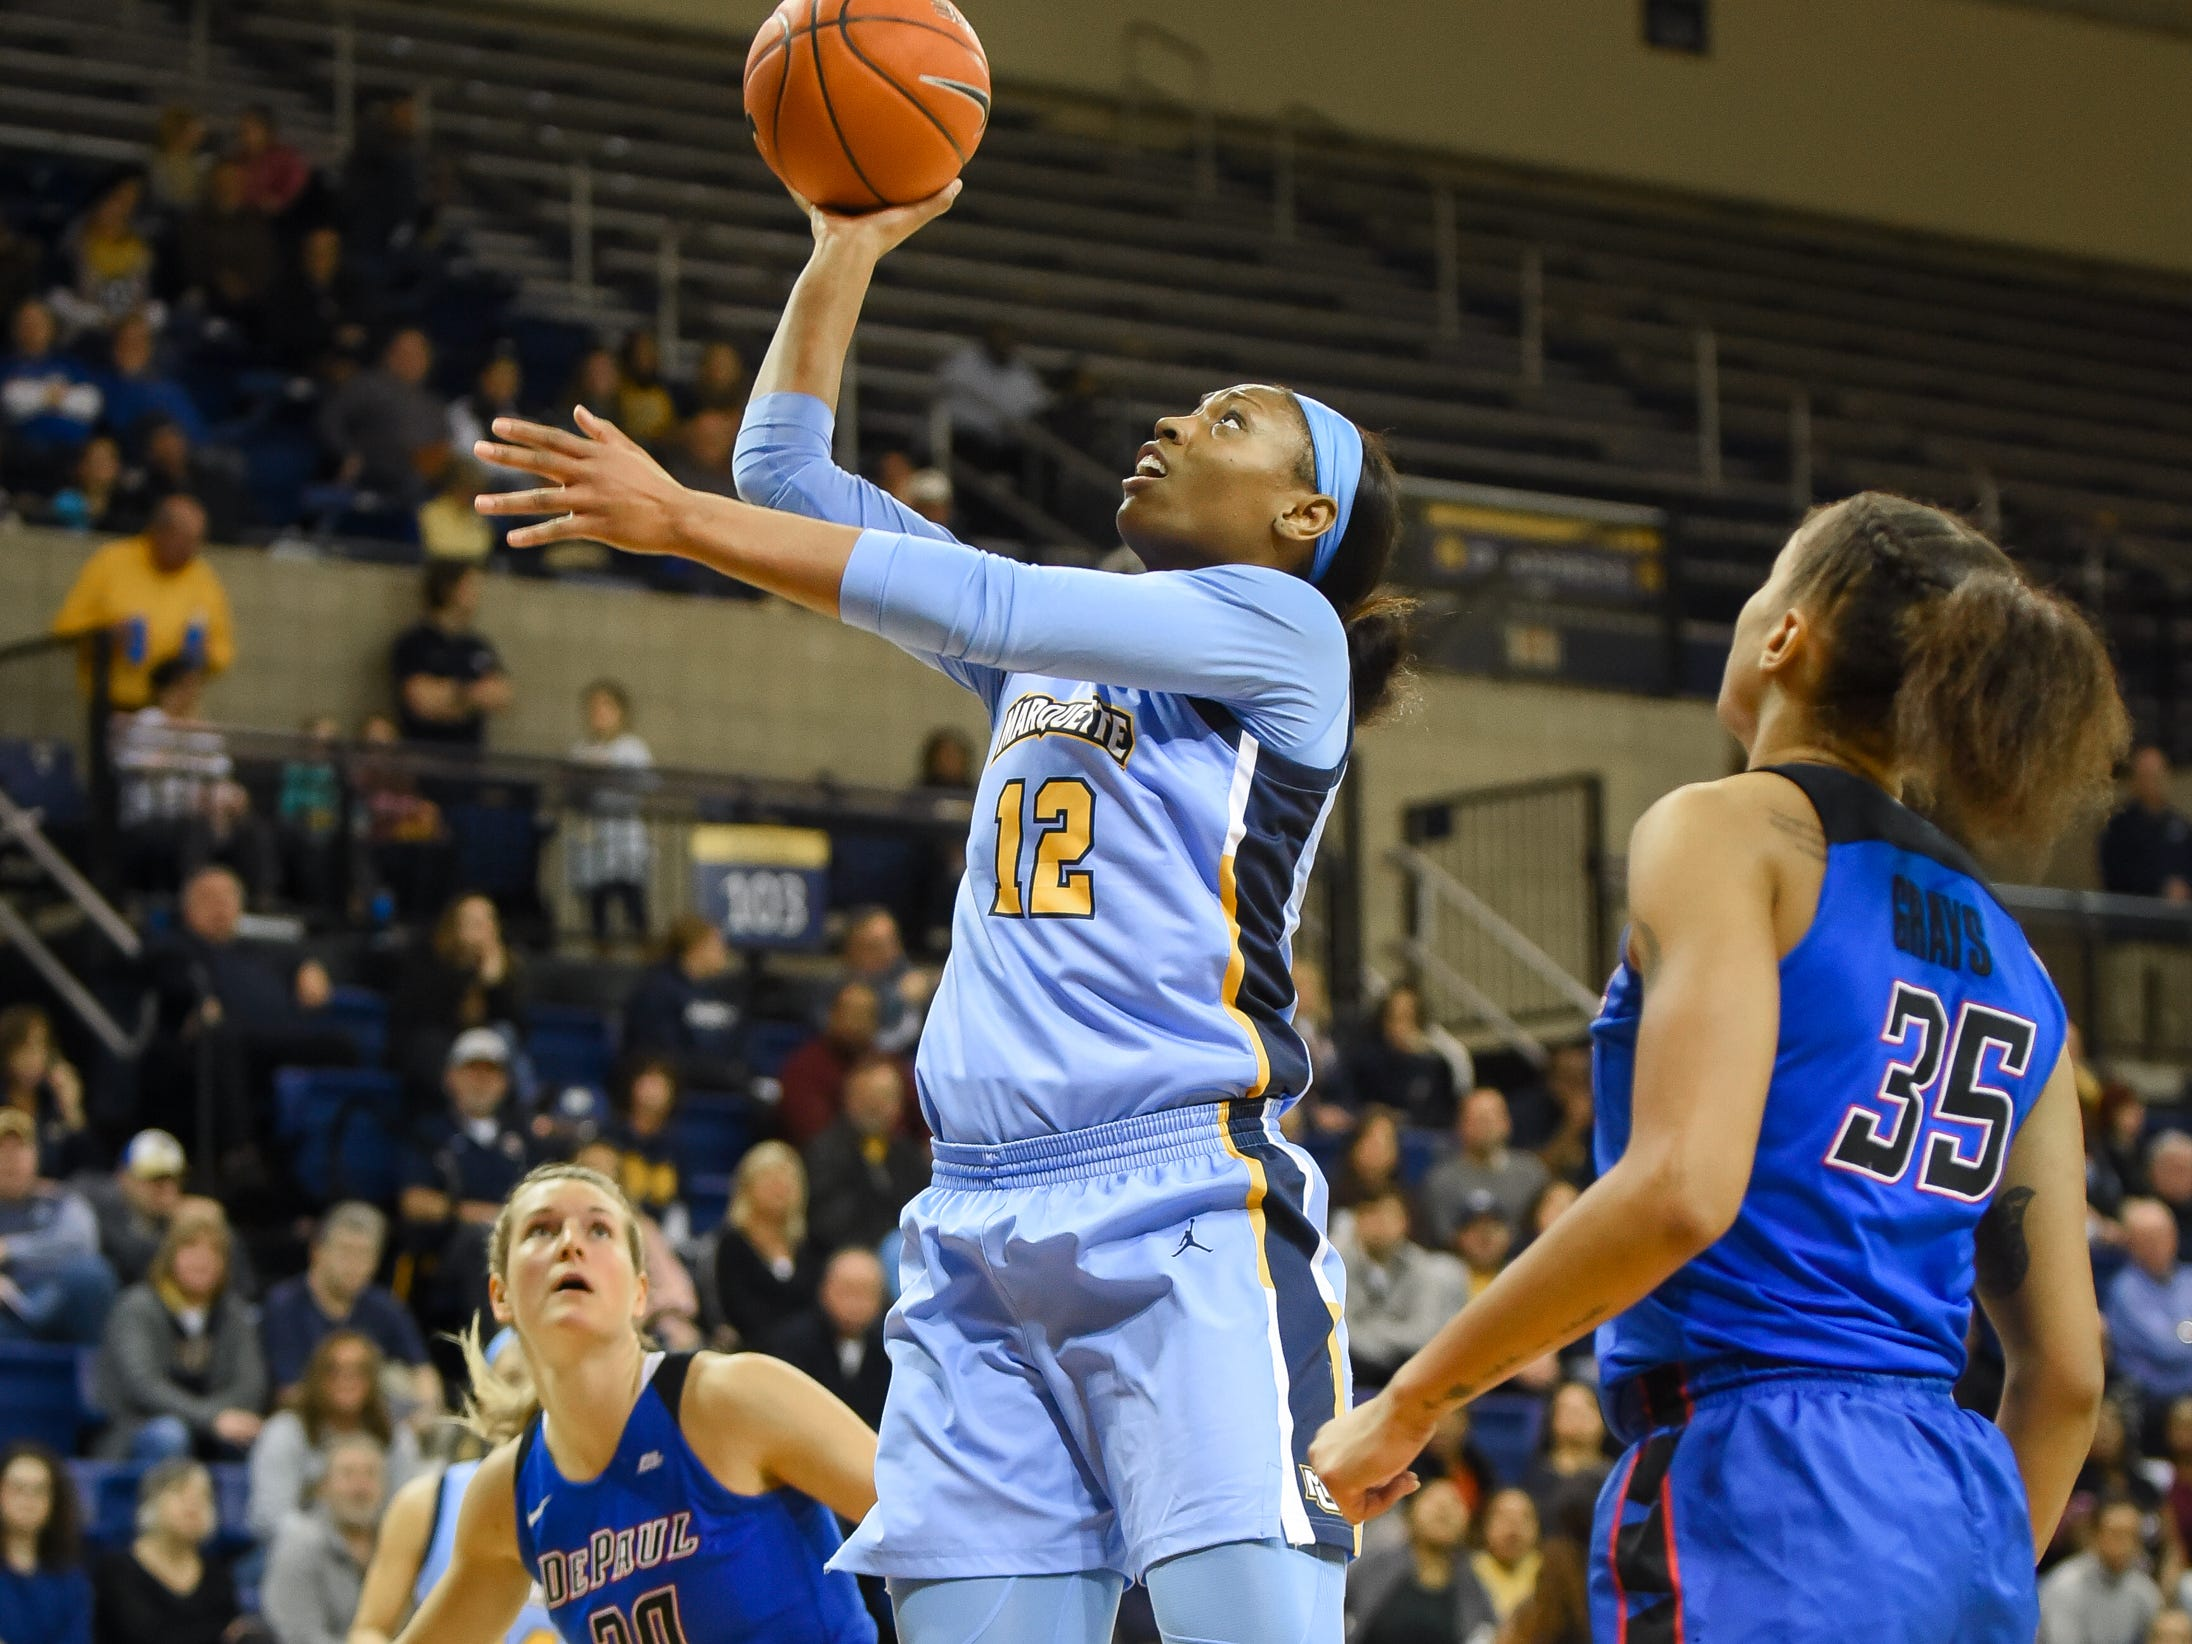 Marquette forward Erika Davenport splits DePaul guard Kelly Campbell (20) and forward Mart'e Grays for a layup in a Big East Conference women's basketball game Friday, January 4, 2019, at the Al McGuire Center on the Marquette campus.